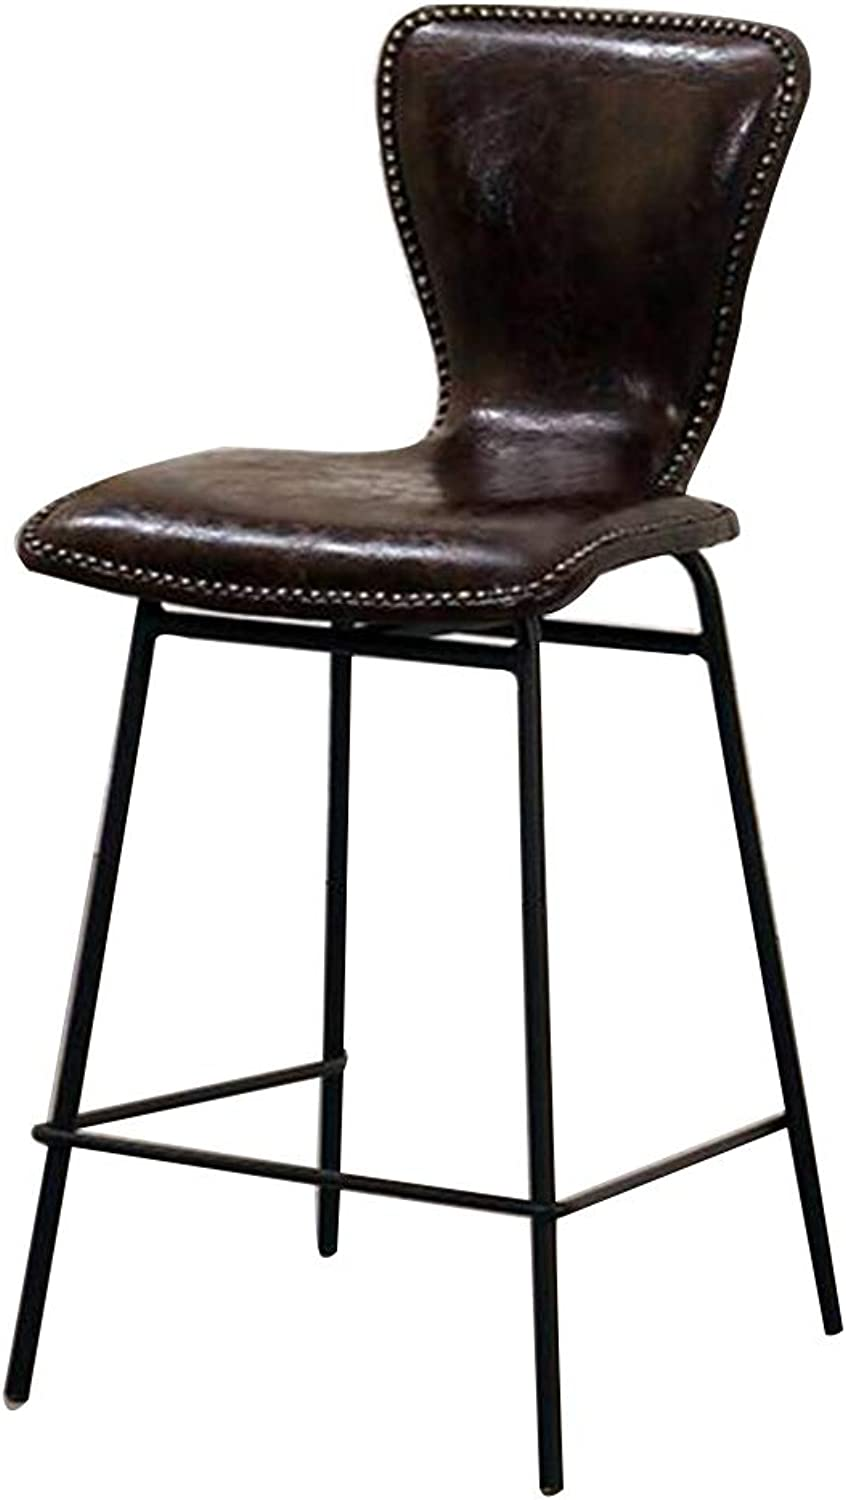 MEIDUO Chairs Bar Stool with Back Metal Durability Stability Retro Industrial Chair Style 4 colors (color   C)